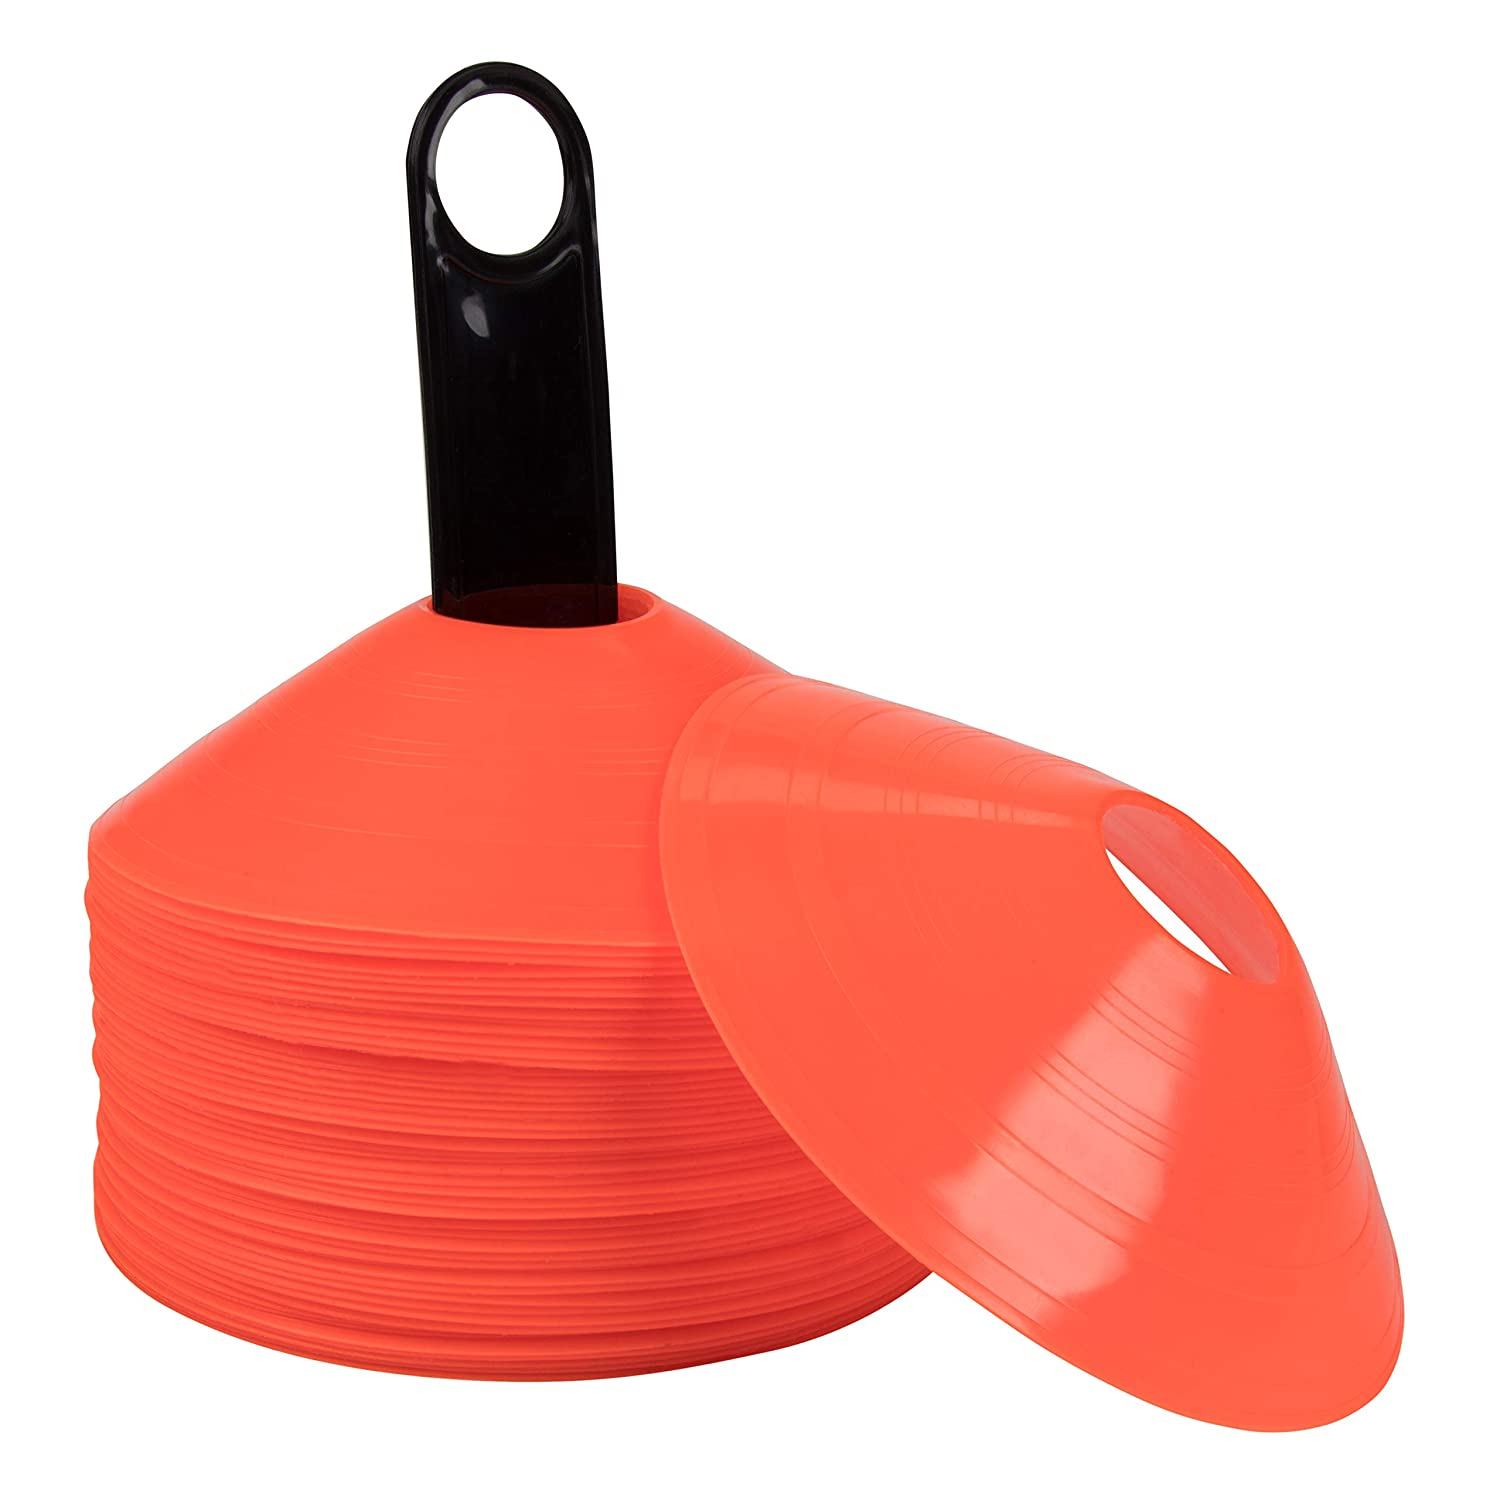 Red Juvale Disc Cones  50Pack Agility Cone Carry Bag Plastic Holder, Soccer Cone, Training Cone, Field Cone Marker Soccer Football Bike Training, Sport, 7.28 x 7.28 x 1.89 Inches